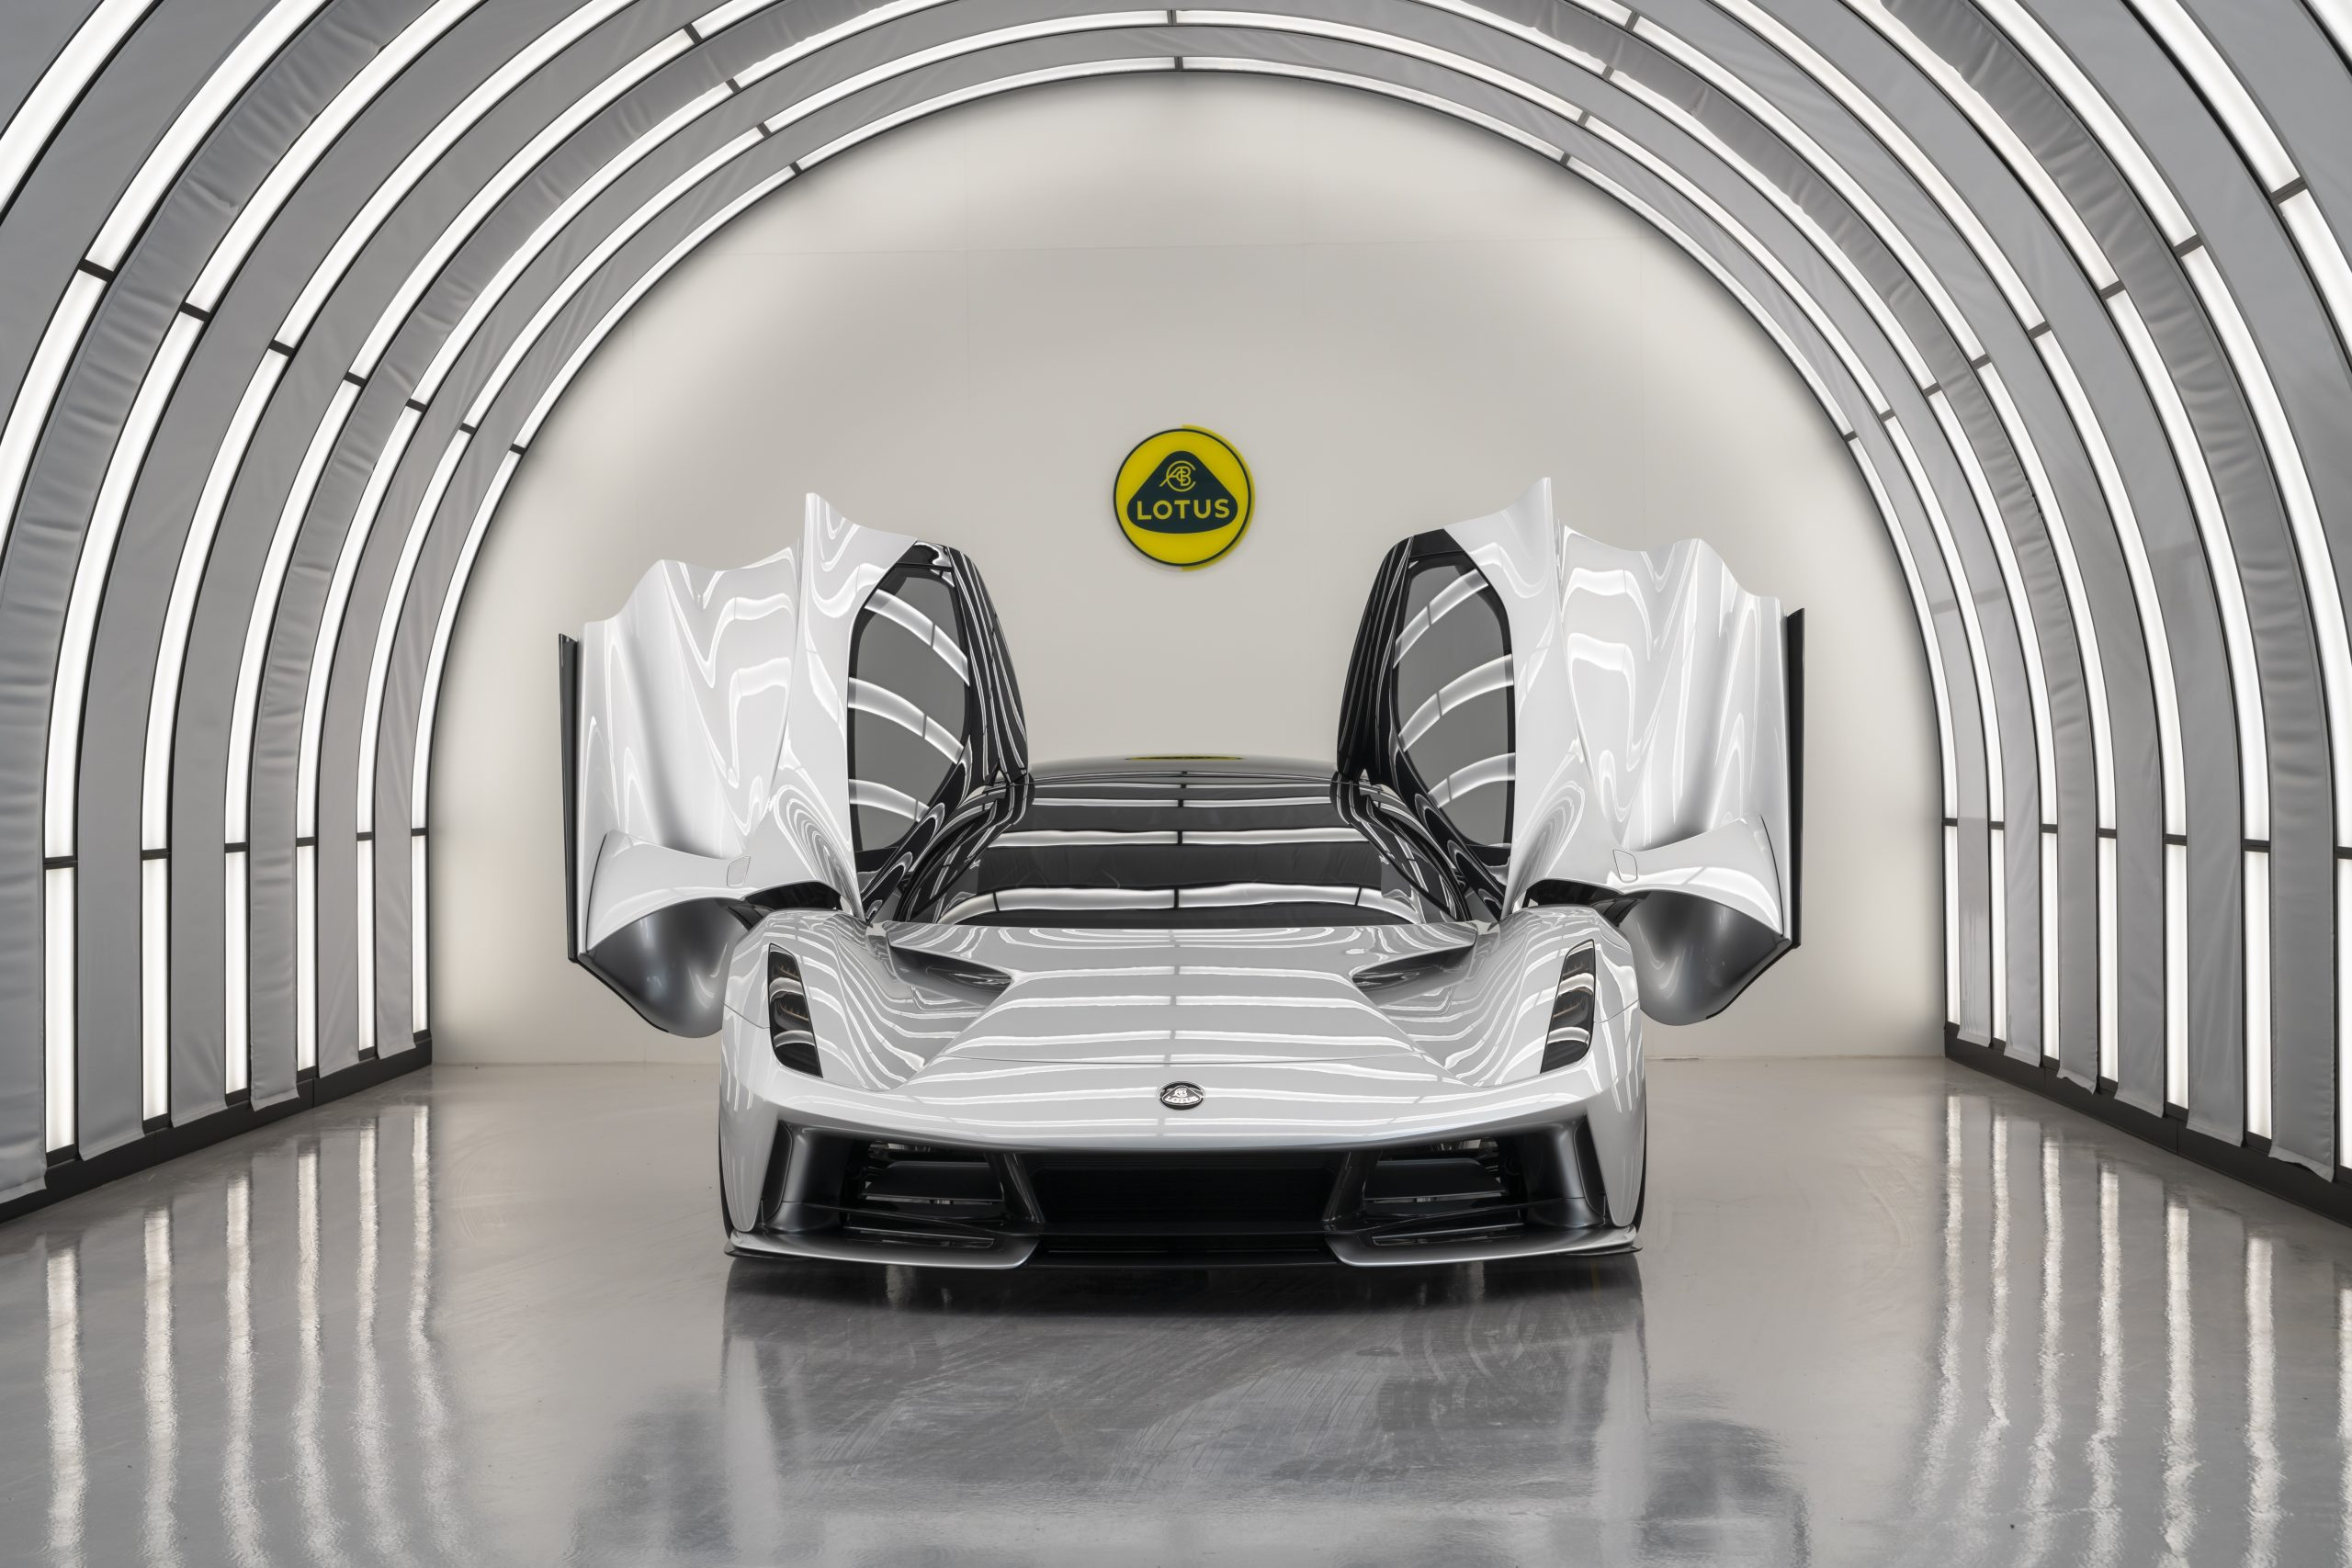 Artomobilia and Gator Motorsport Proudly Present: A Rare Opportunity To See The World's Only Lotus EV Hypercar!